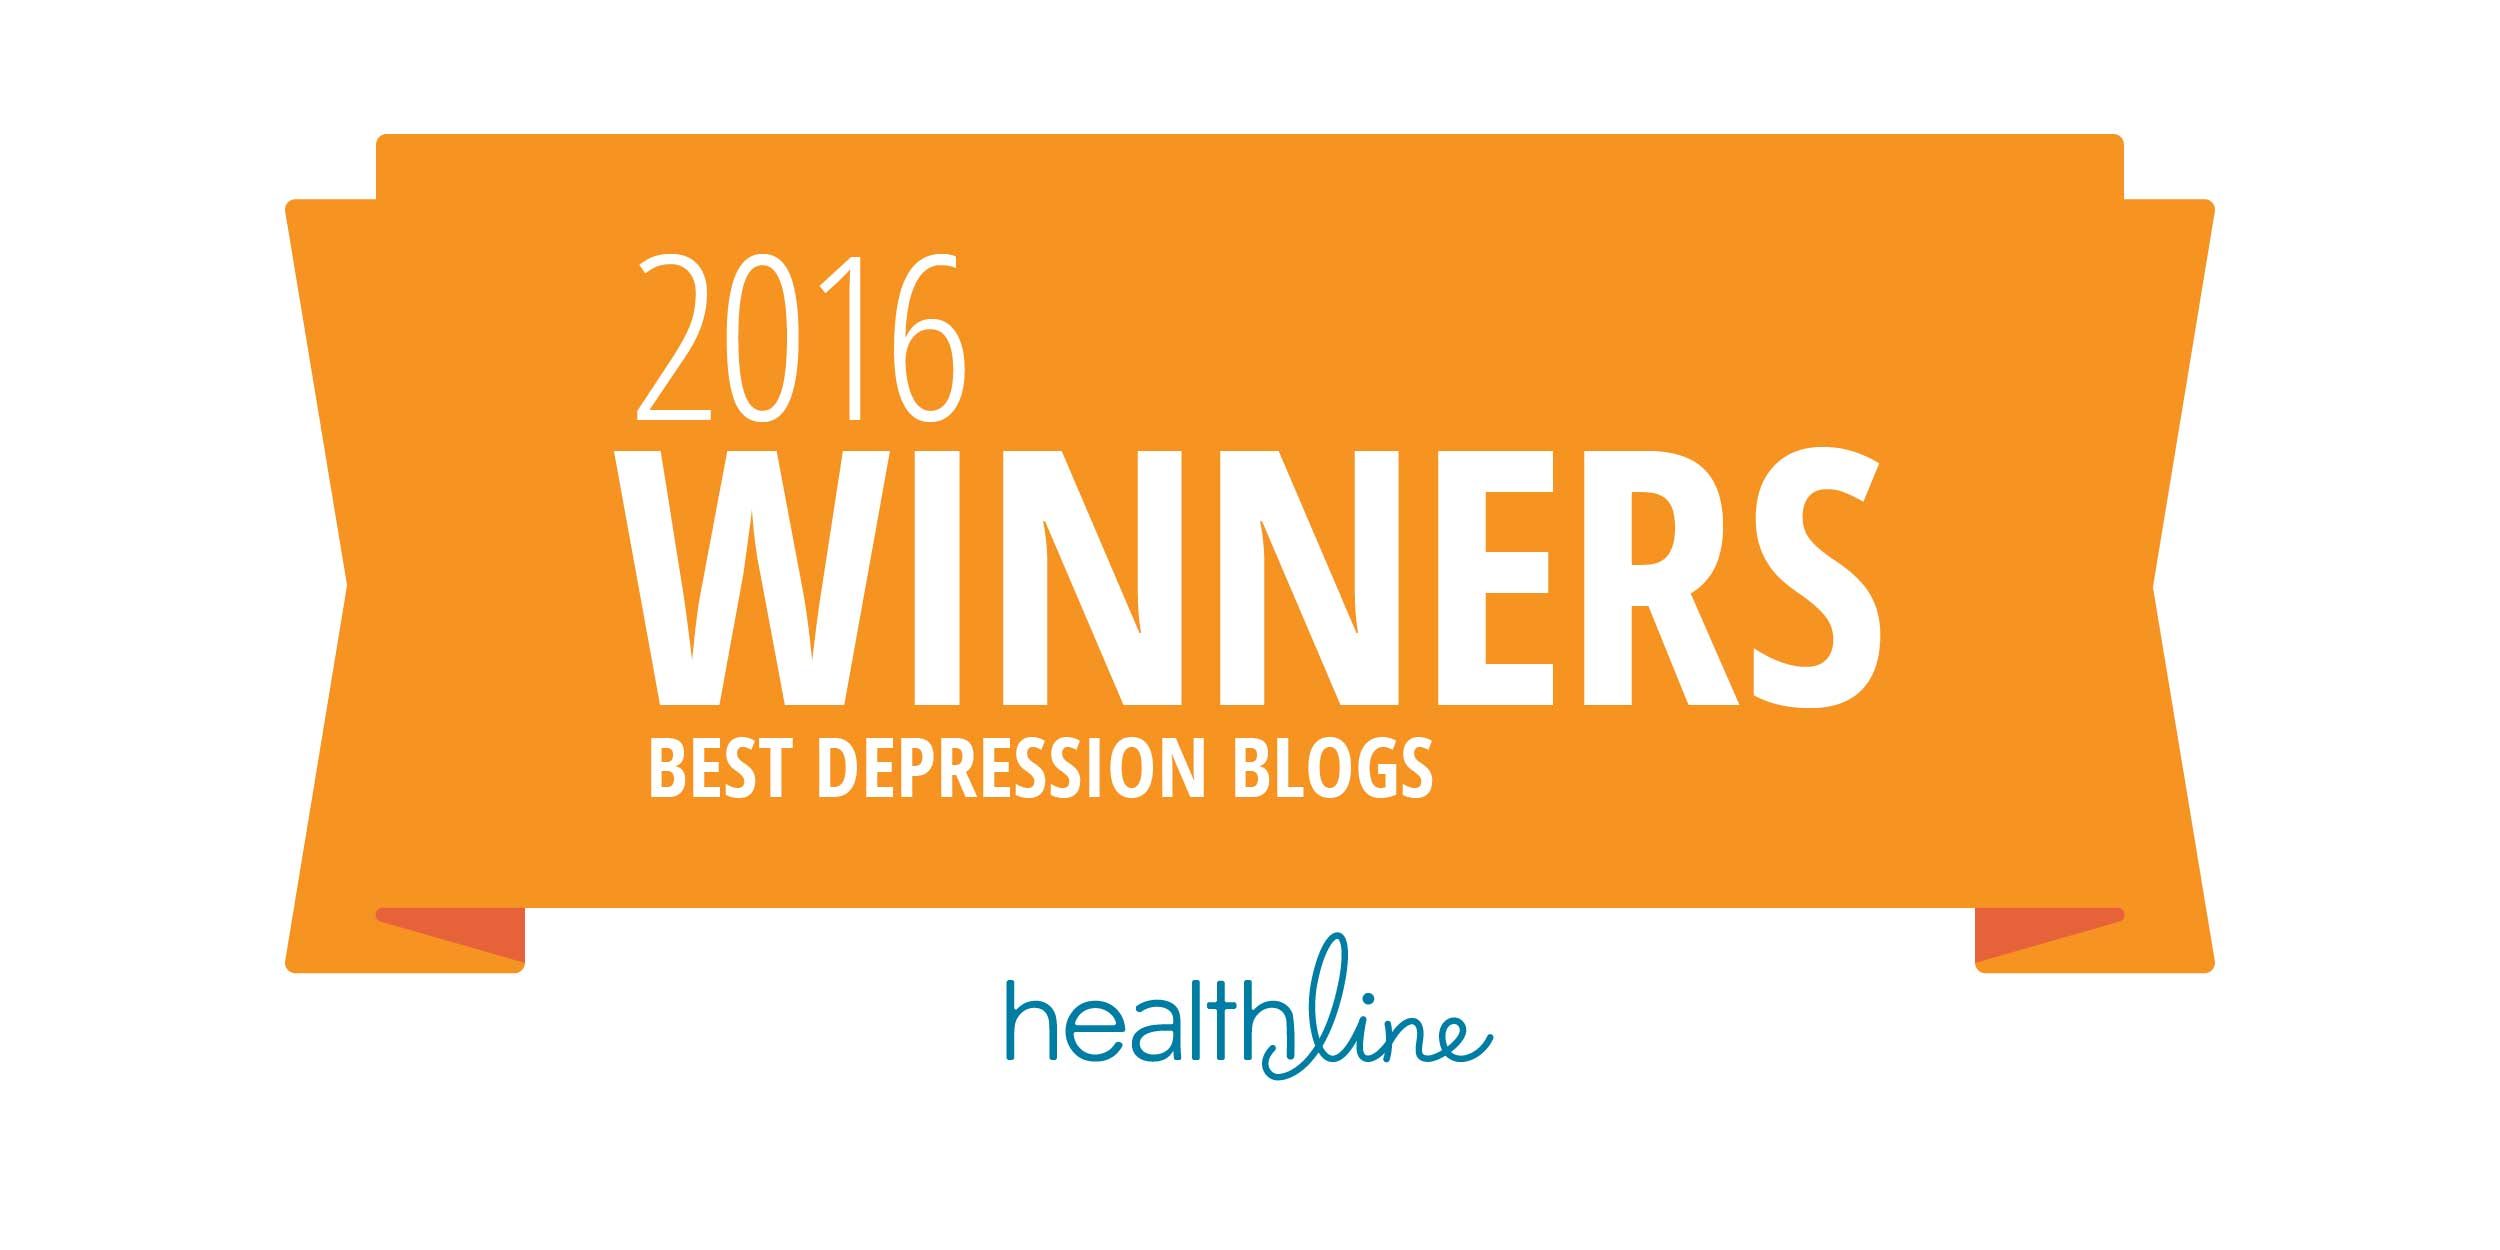 The Best Depression Blogs of the Year